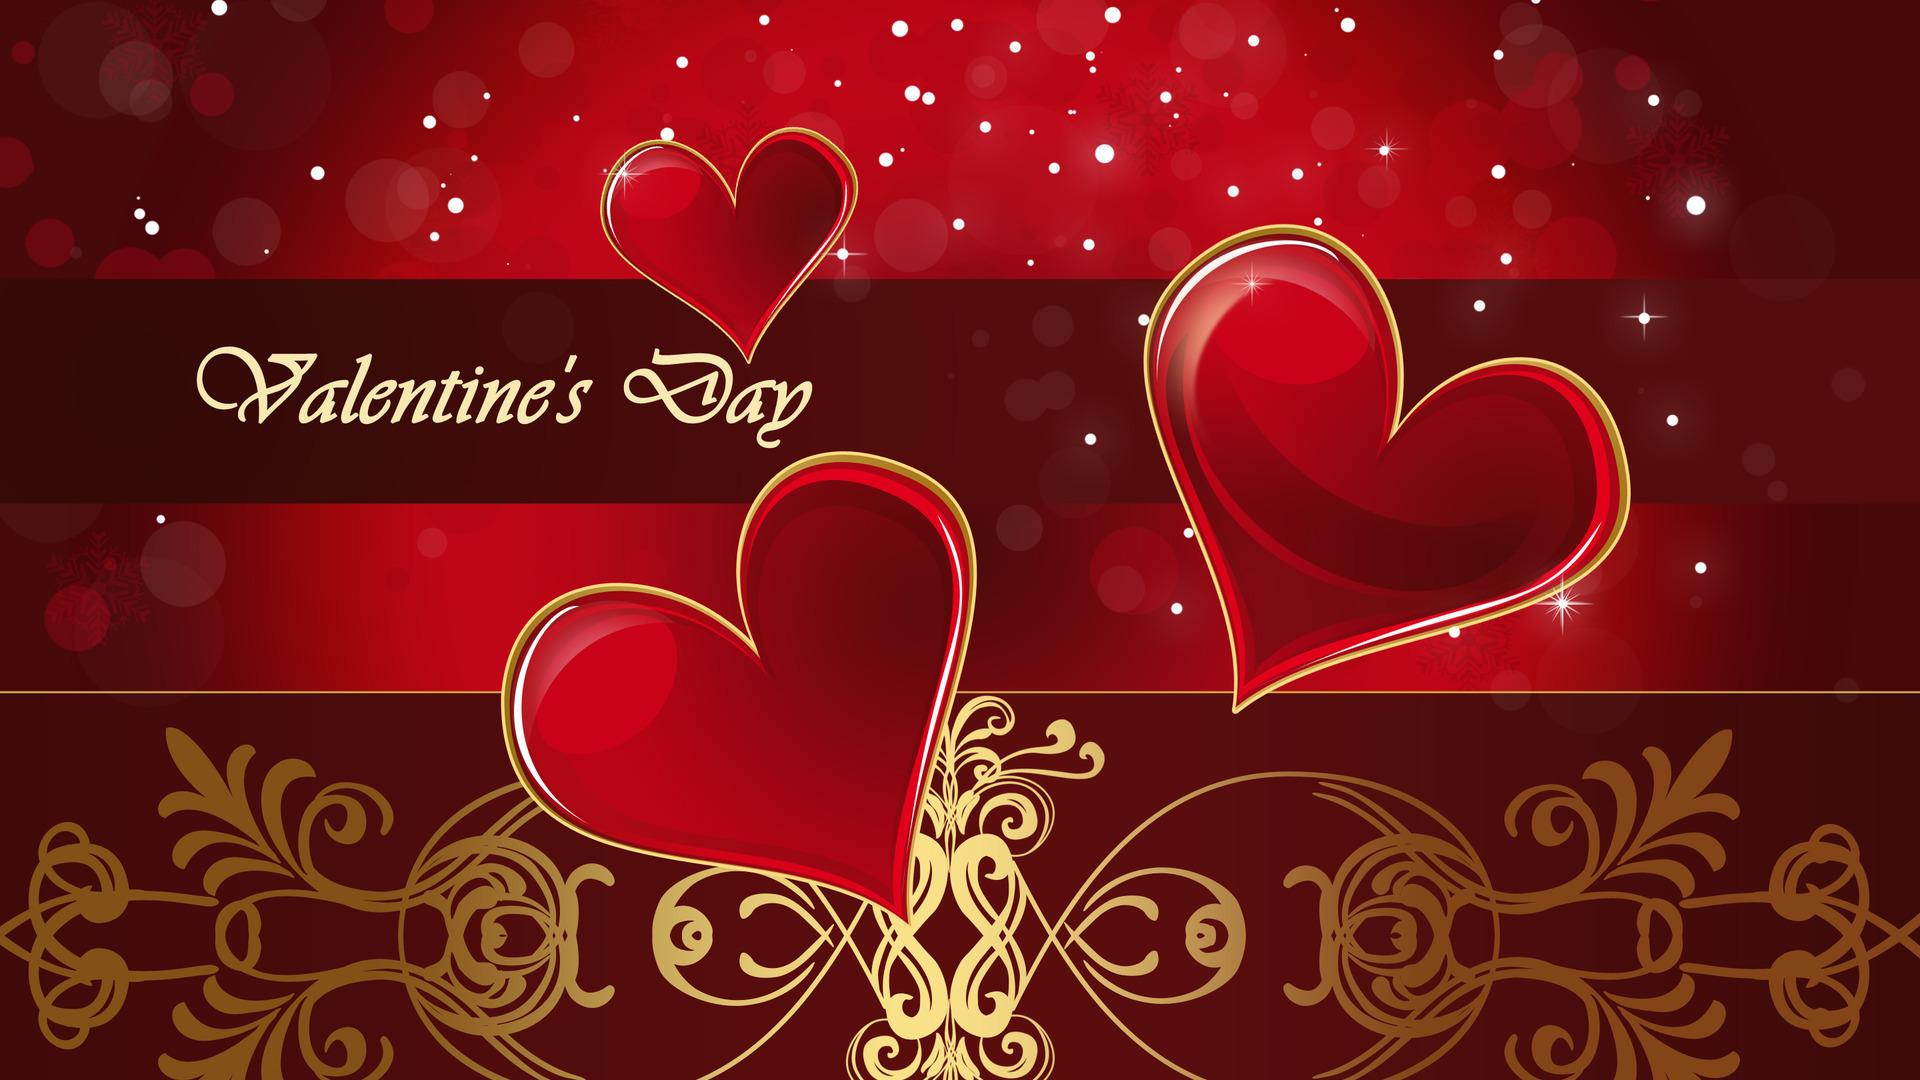 Valentines Day Hearts Exclusive HD Wallpapers 6154 1920x1080